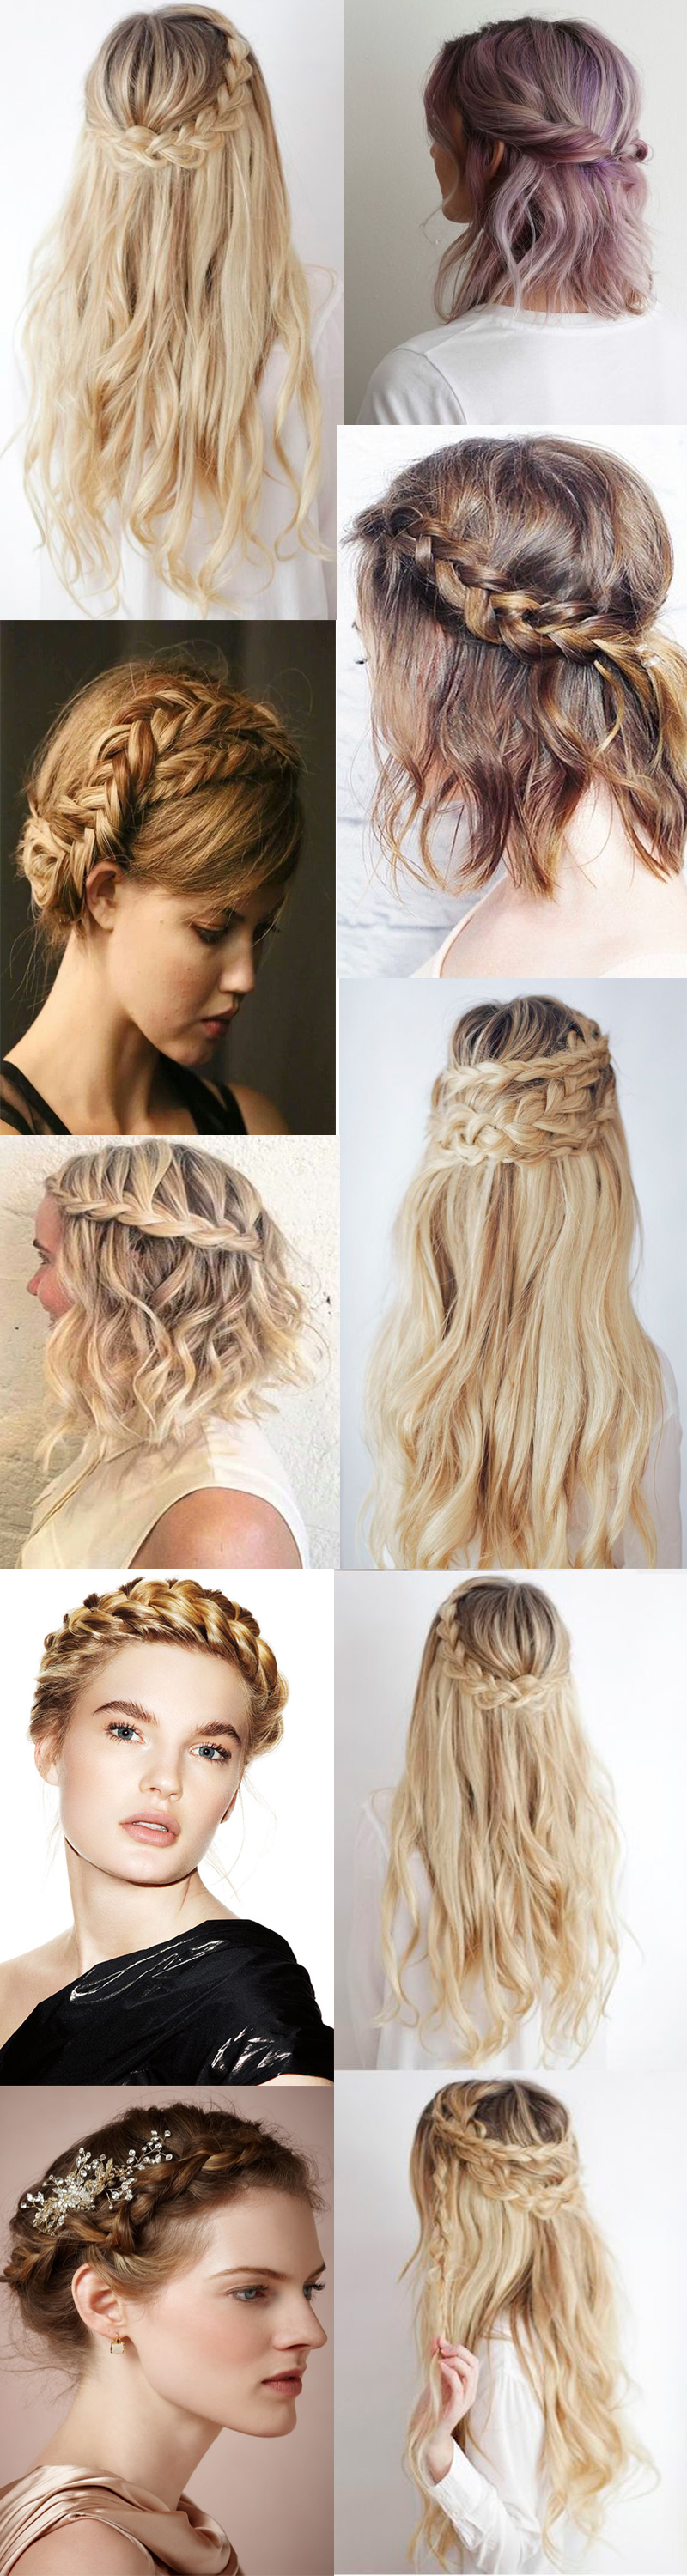 Crown wedding braids hairstyles 2016 2017 summer/spring